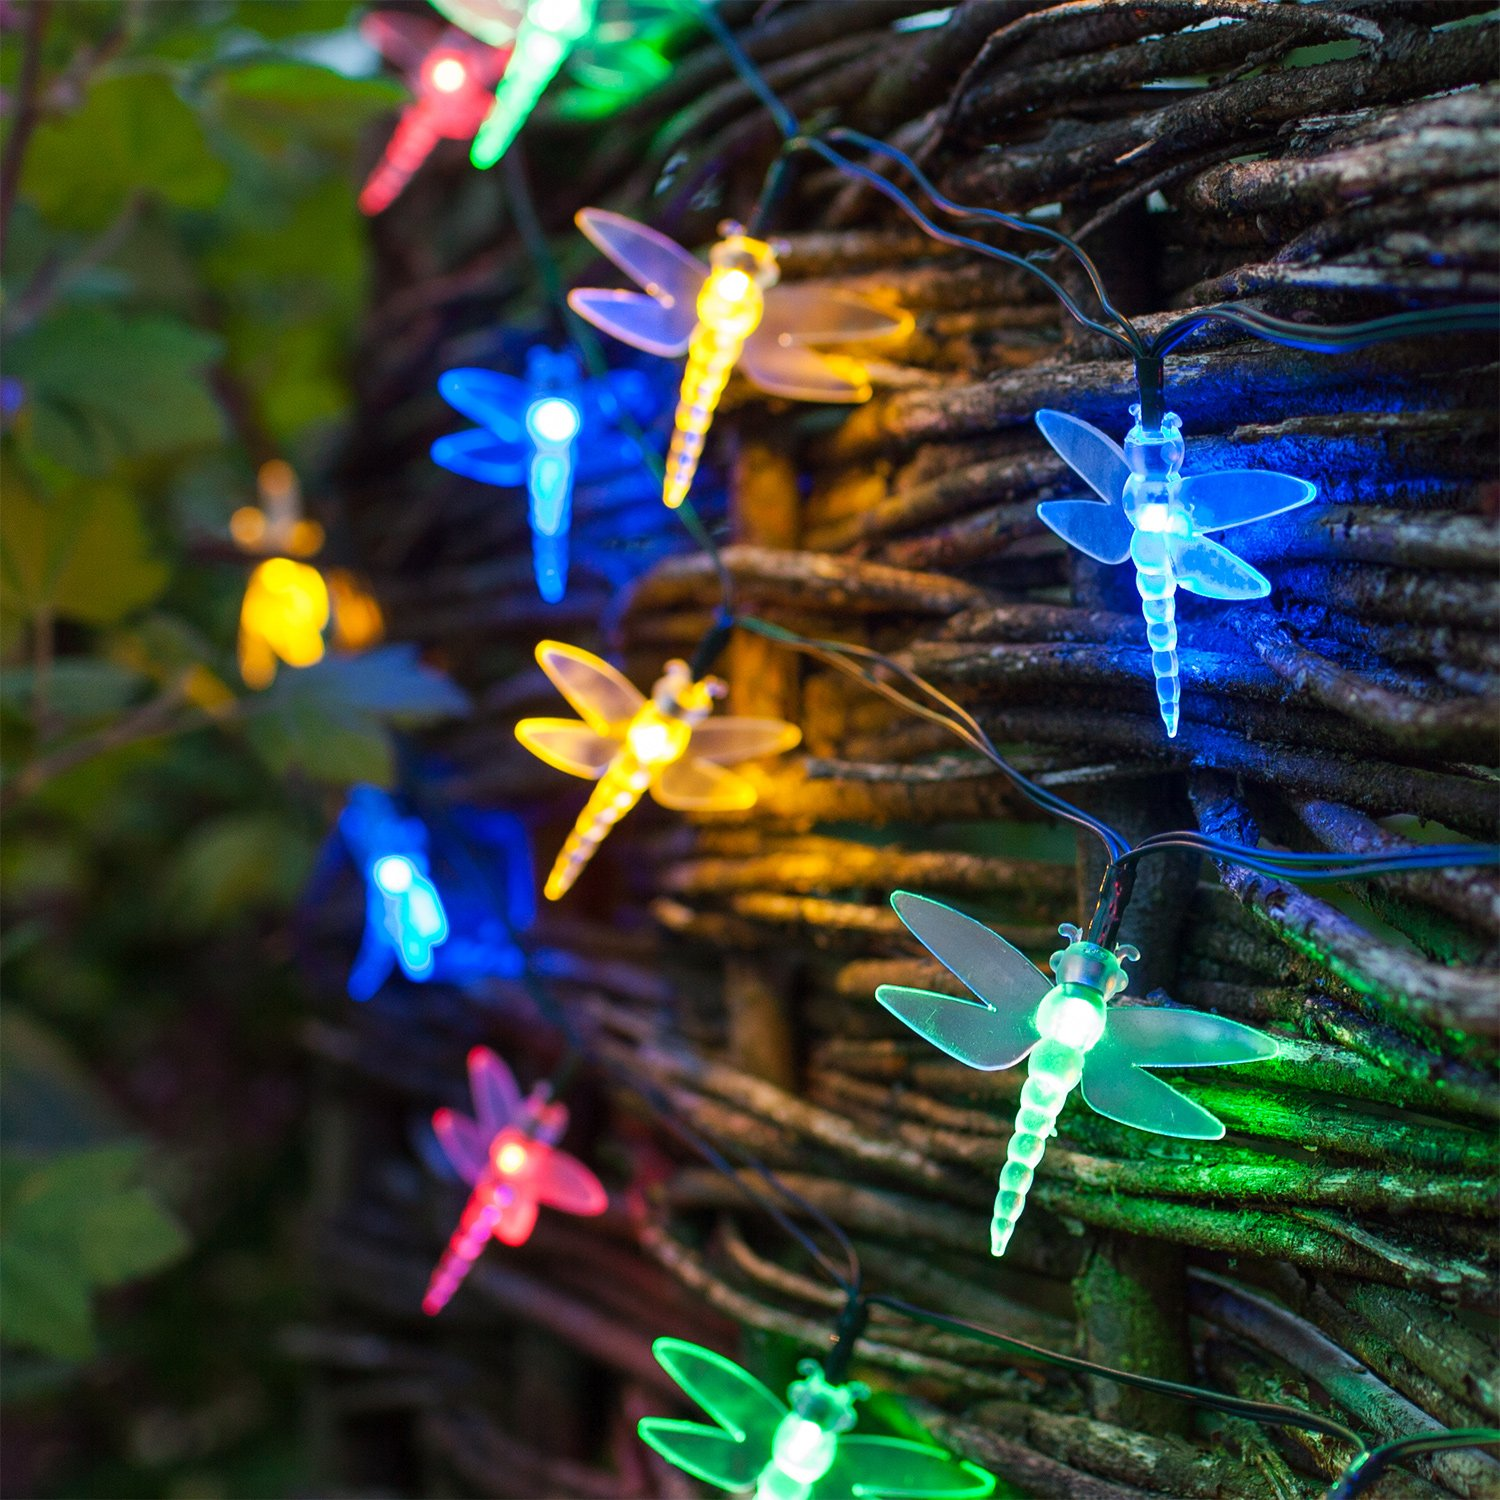 30 multi coloured led dragonfly solar garden fairy lights by 30 multi coloured led dragonfly solar garden fairy lights by lights4fun amazon garden outdoors mozeypictures Gallery